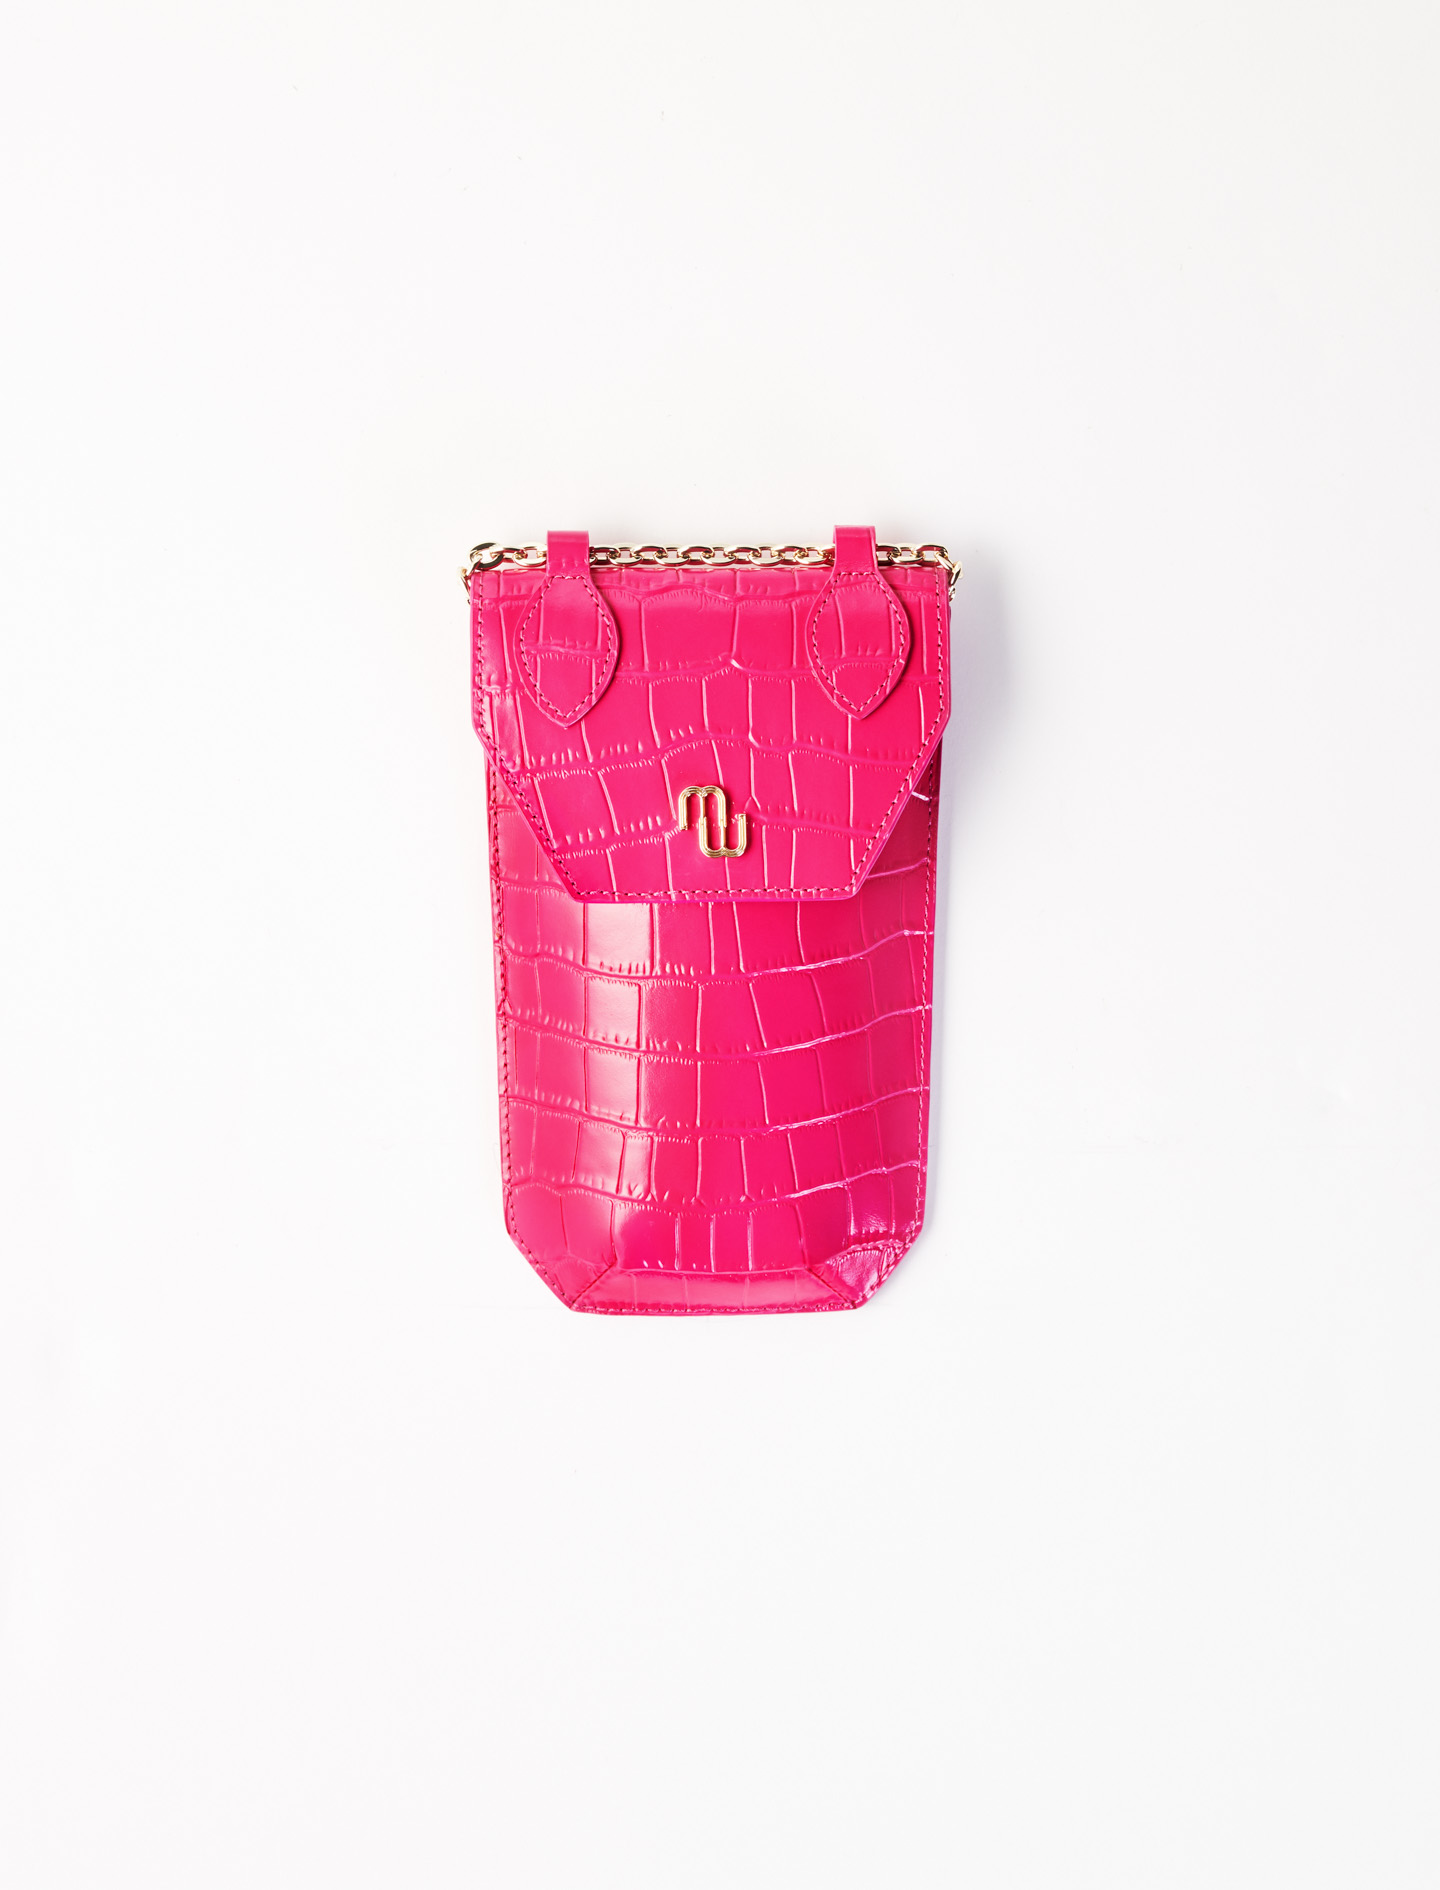 Crocodile-effect phone case  - Pink